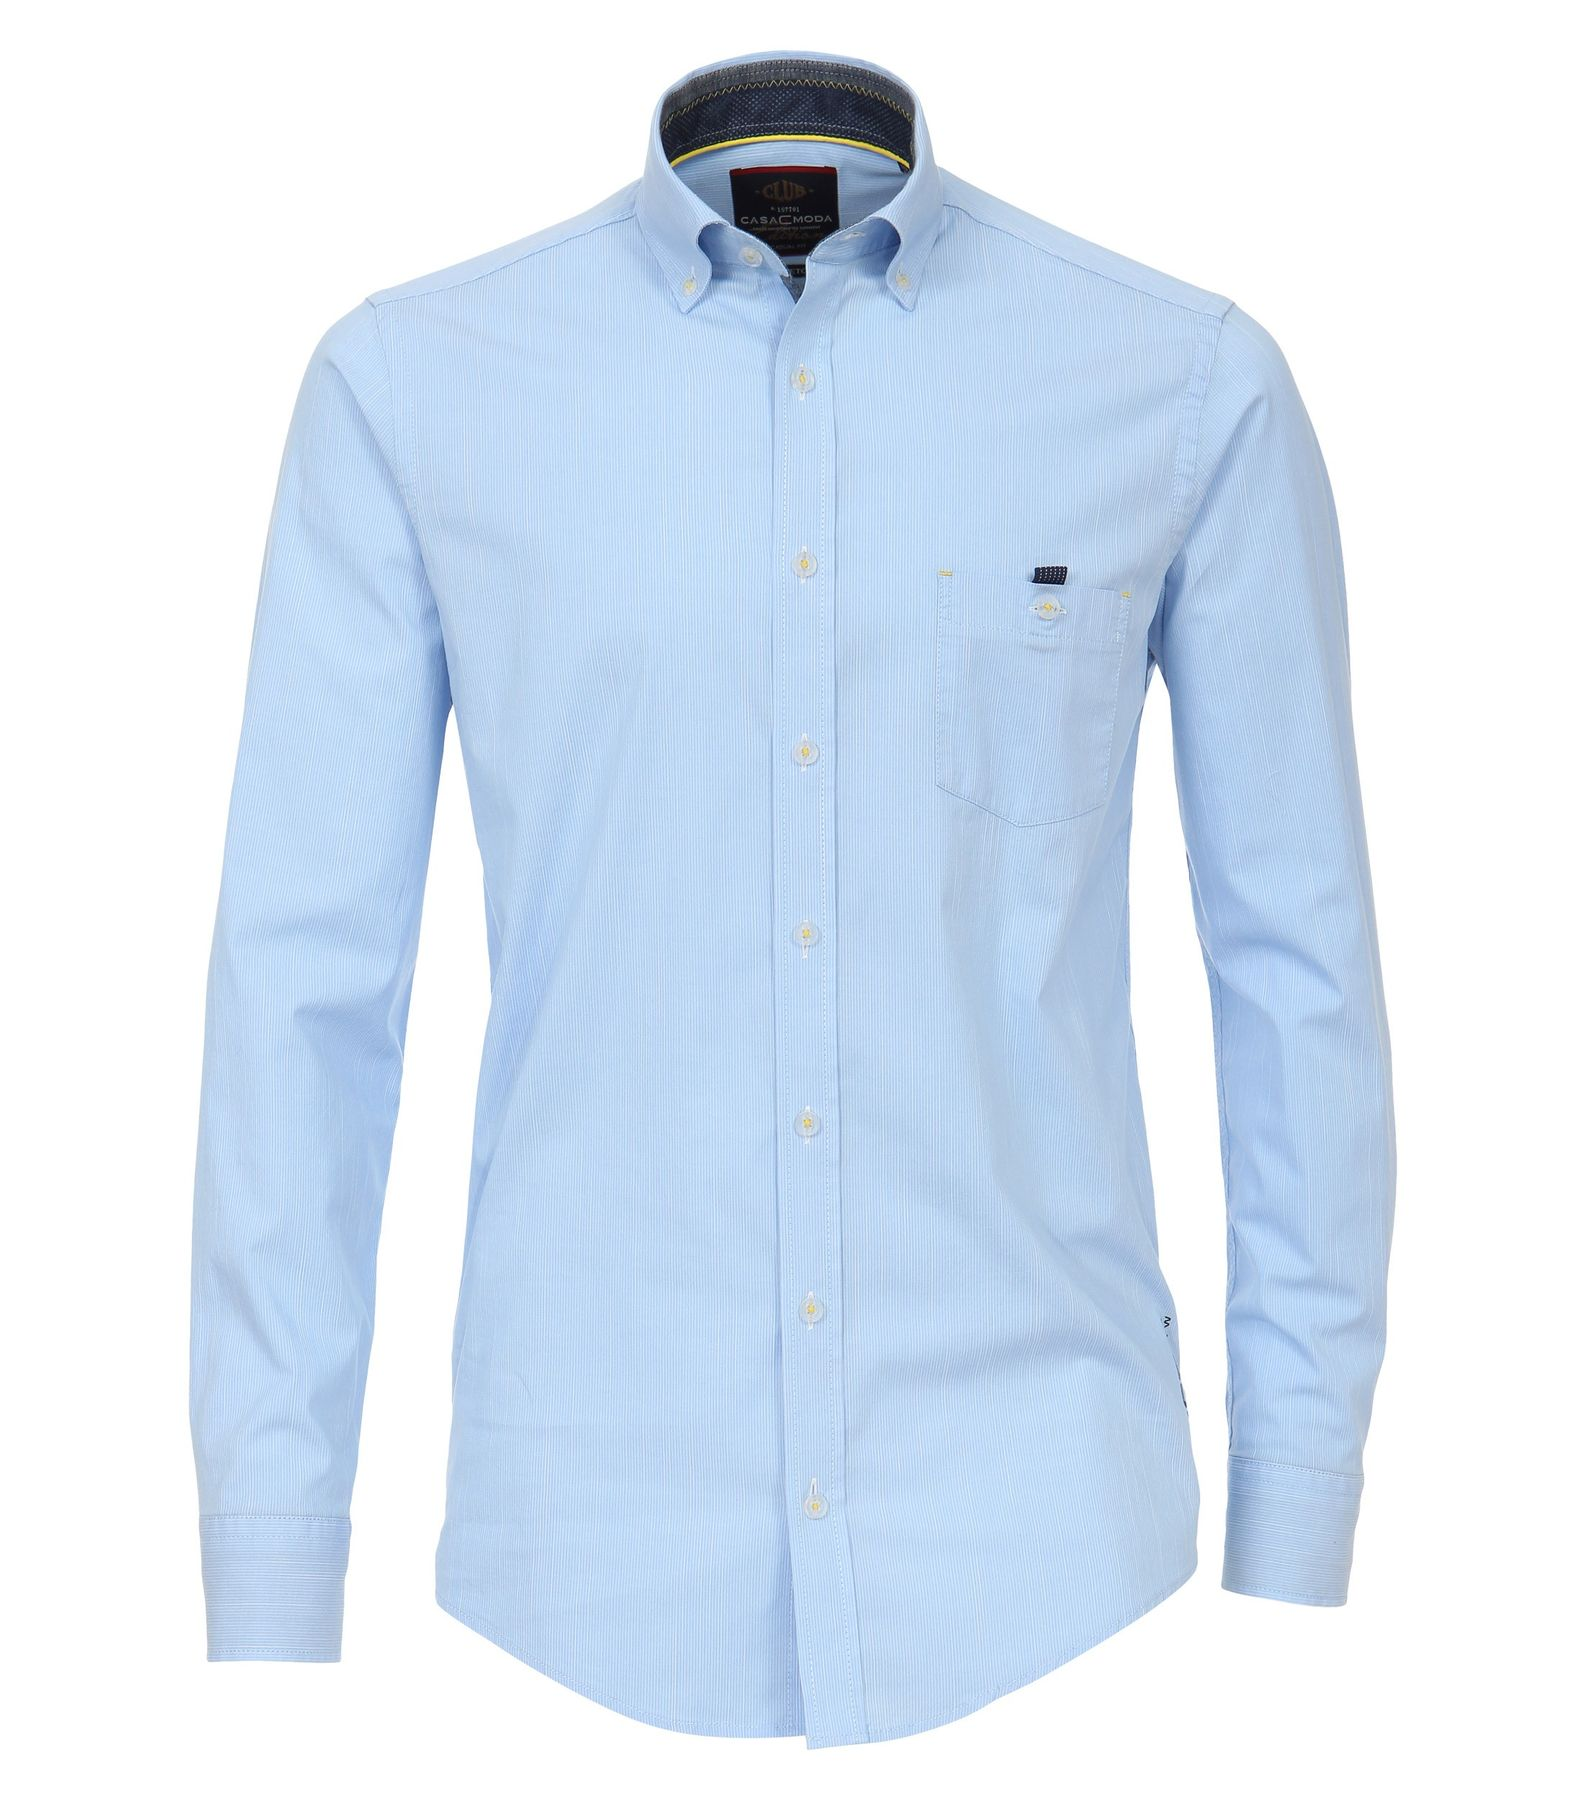 Casa Moda - Casual Fit - Herren Hemd gestreift mit Button Down-Kragen in blau (482898500)